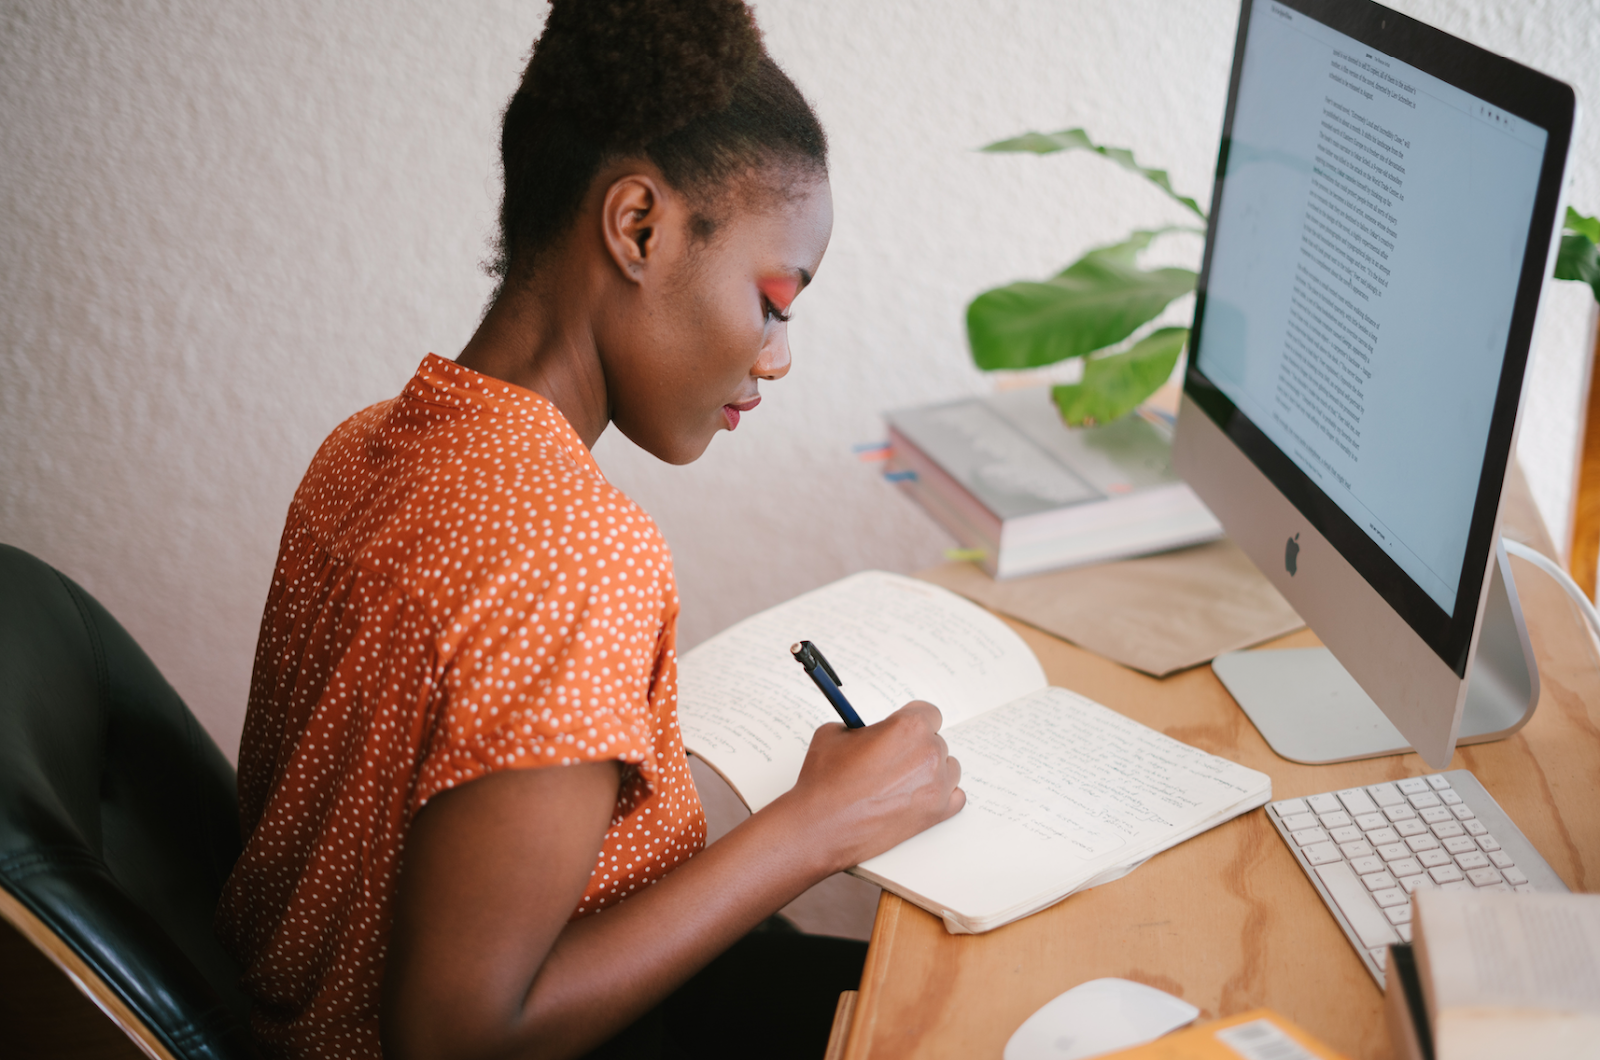 Girl writing in notebook in front of iMac